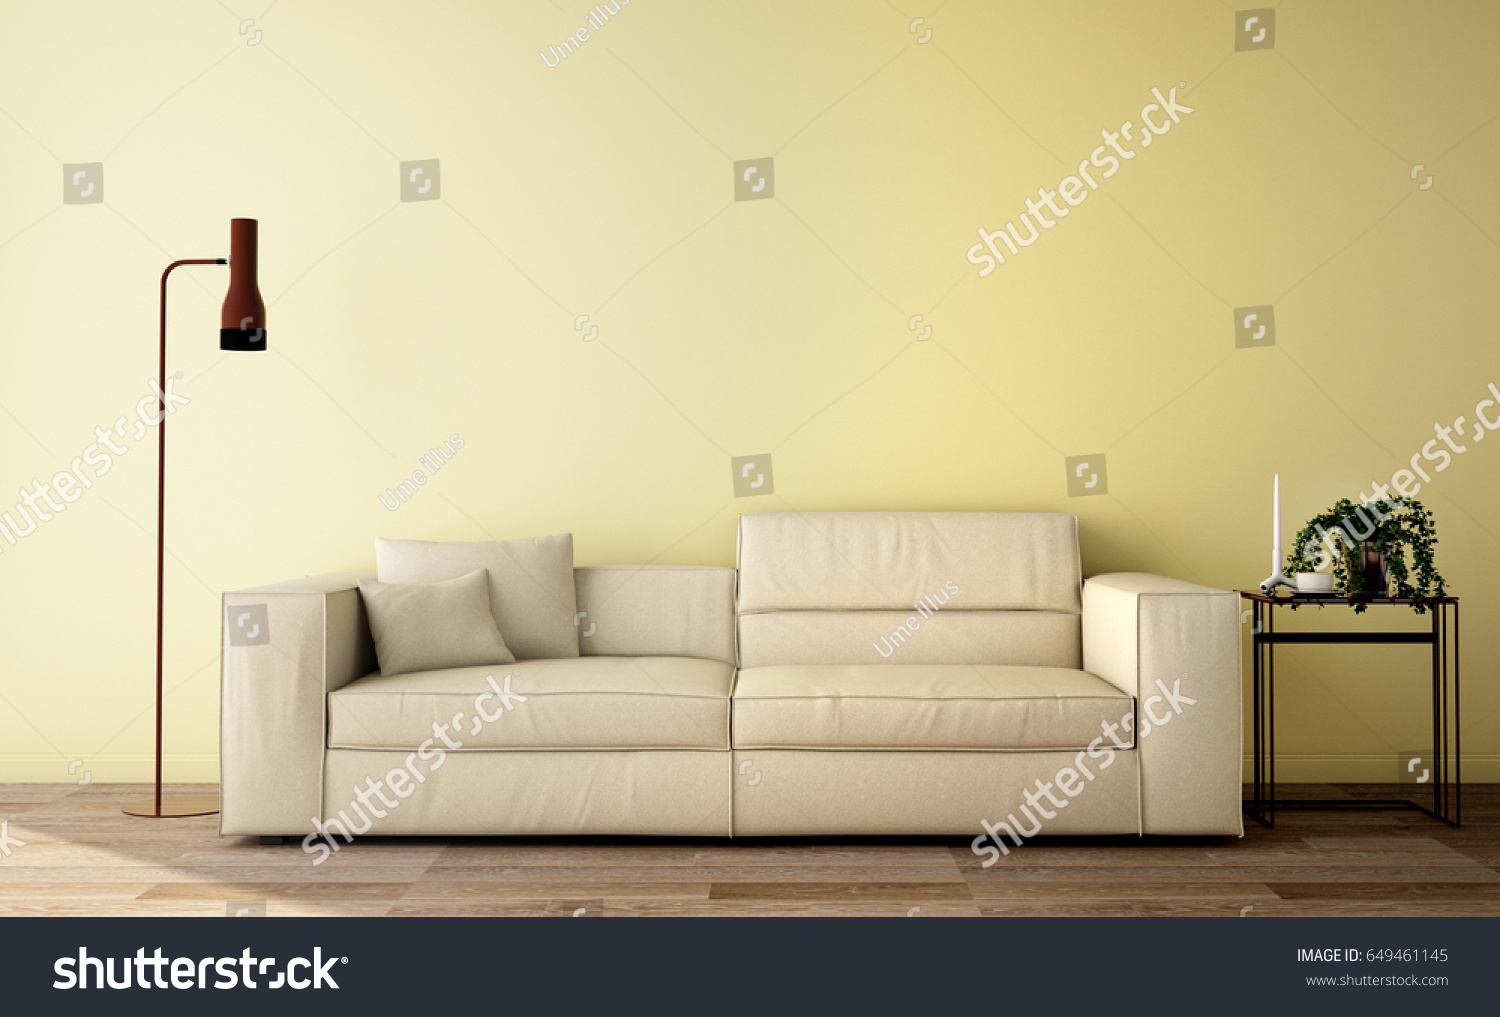 Interior Design ,living Room Design In Modern Style And Minimalism Style  Background With Sofa,